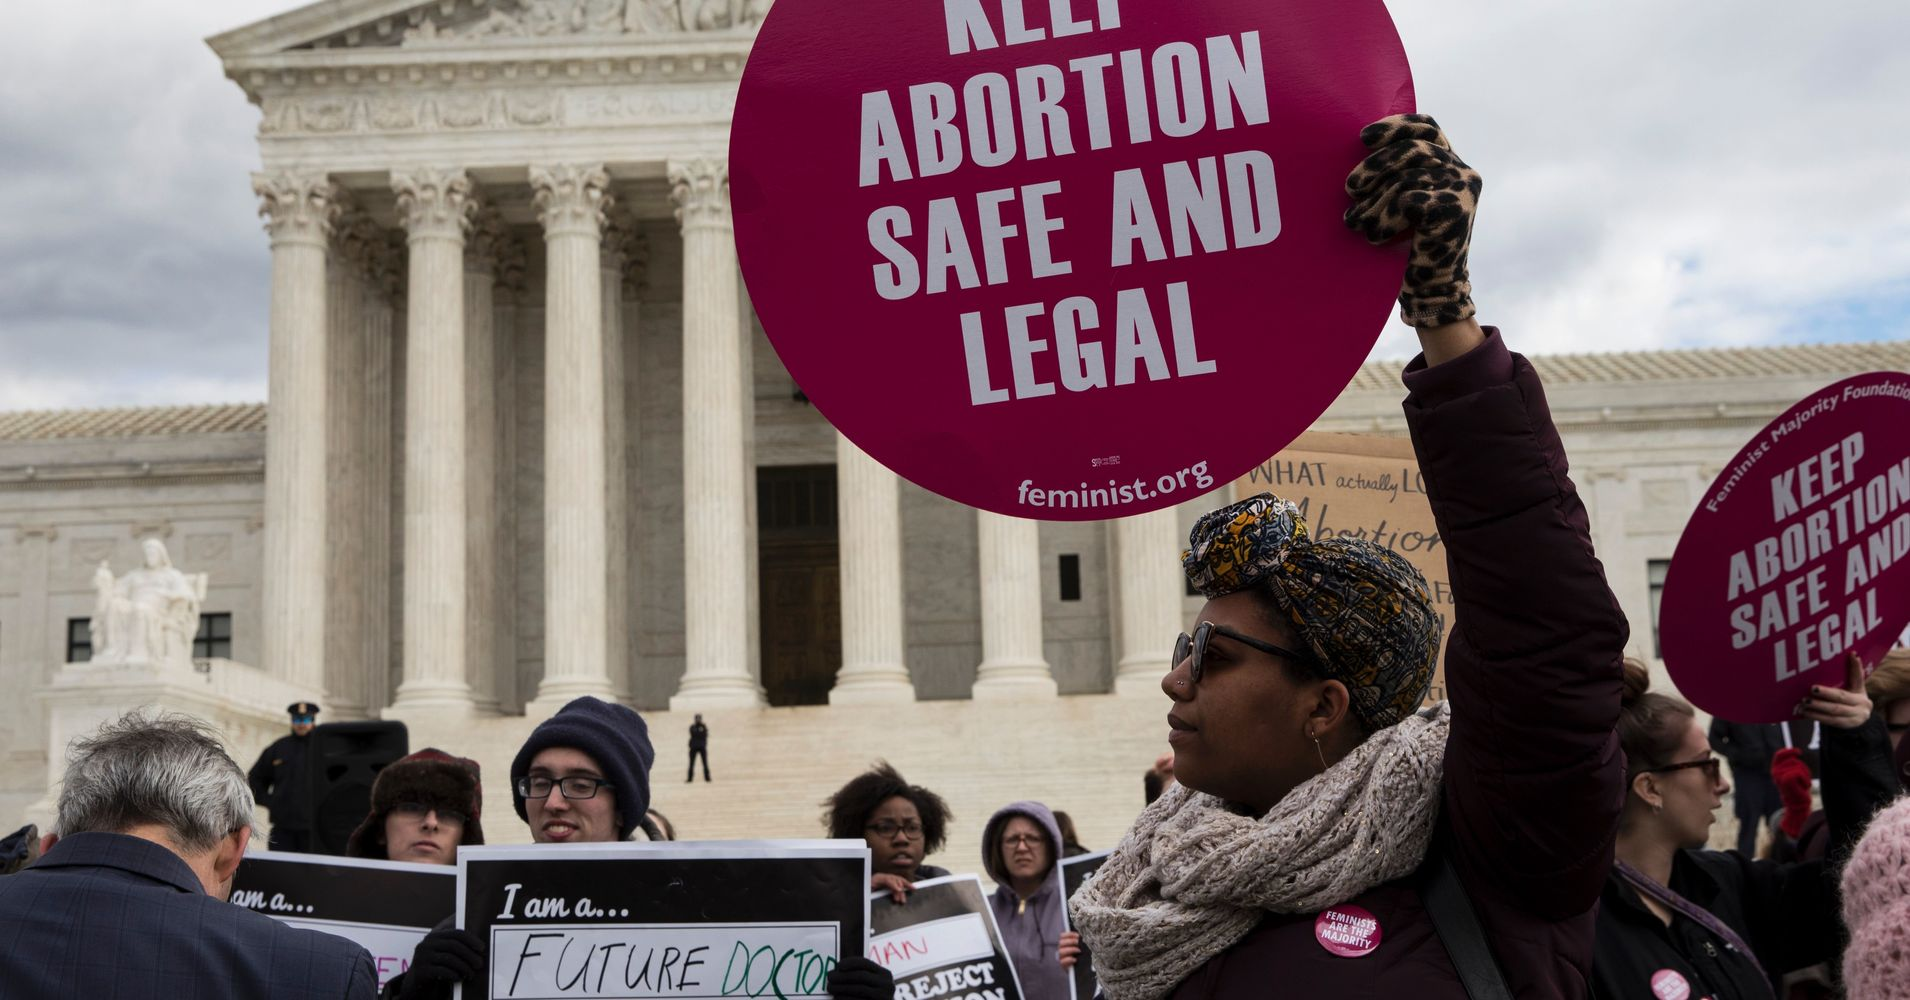 legalization of abortion in mexico Abortion is legal in mexico only when the woman's life is in danger or in cases of rape or incest states are allowed to regulate their abortion laws and some will allow an abortion when there are severe congenital defects.